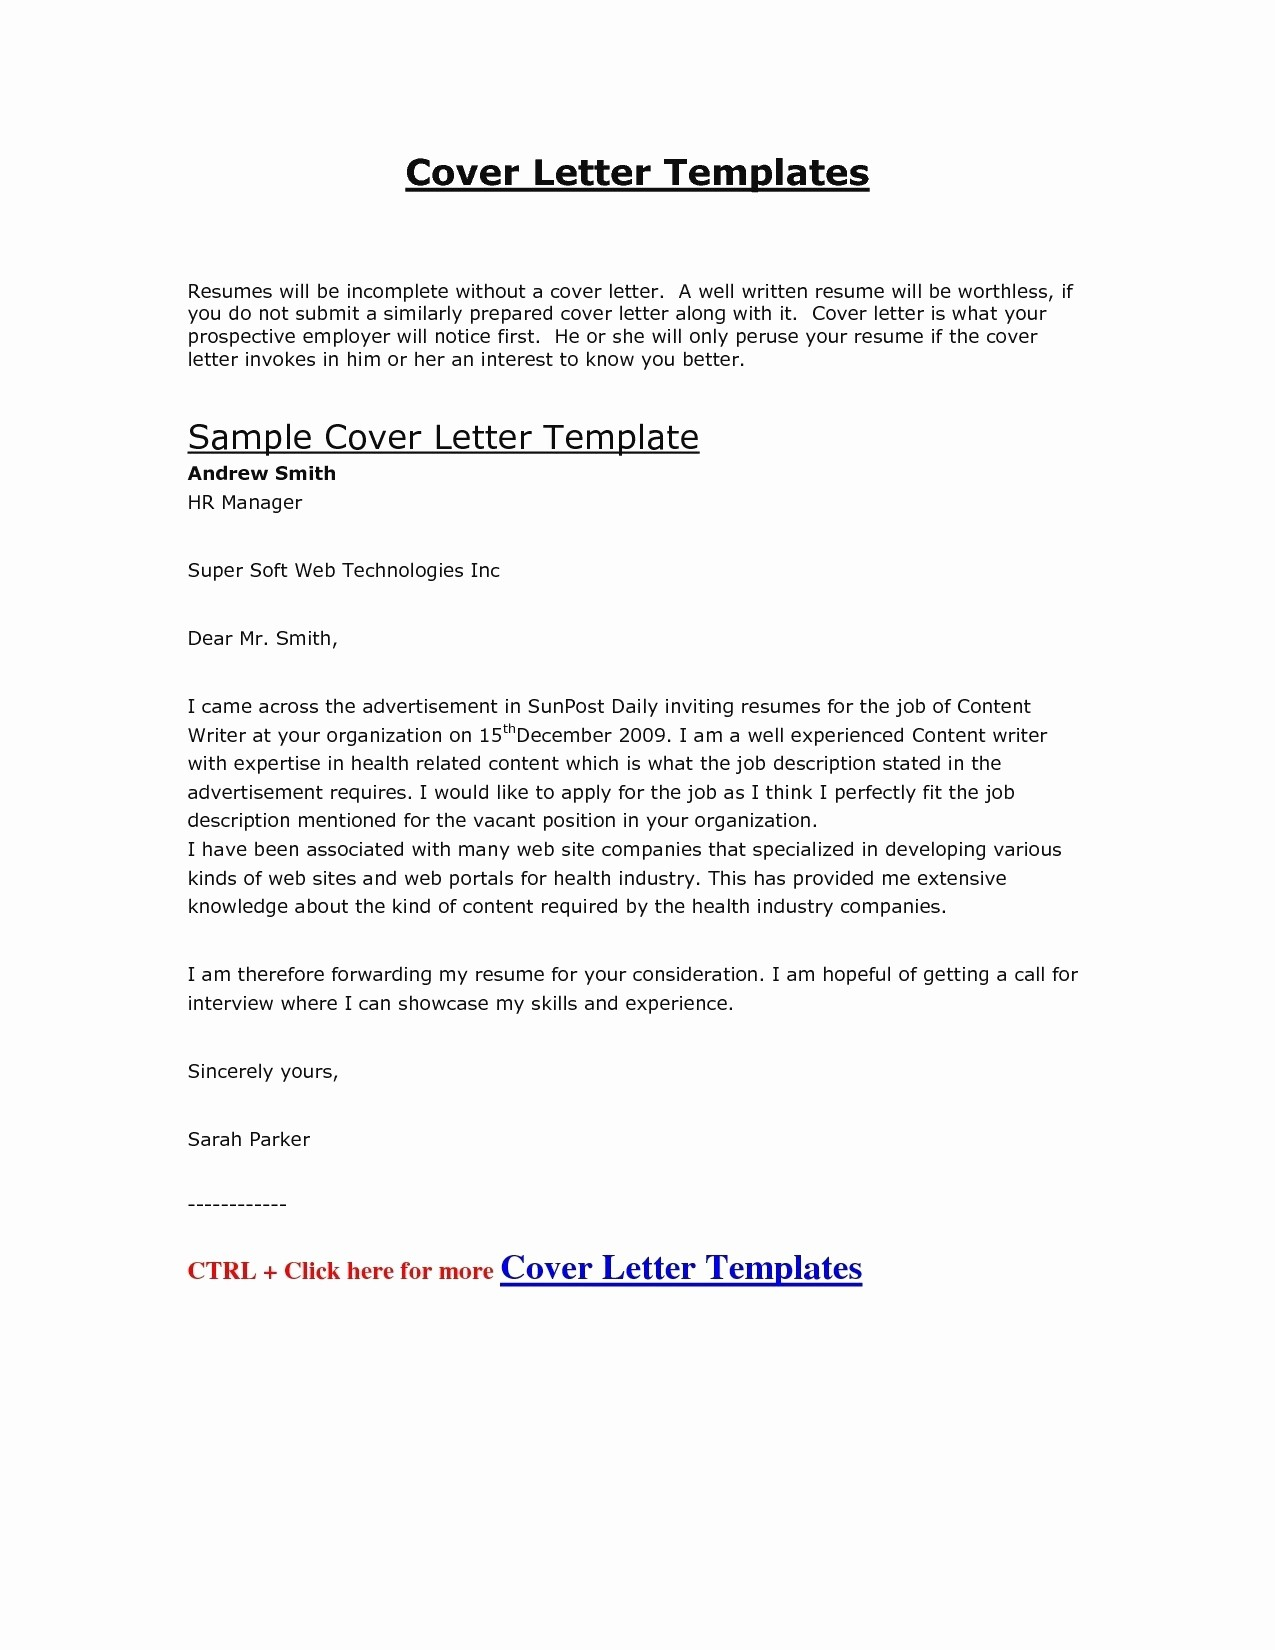 Excellent Cover Letter Template - Job Application Letter format Template Copy Cover Letter Template Hr